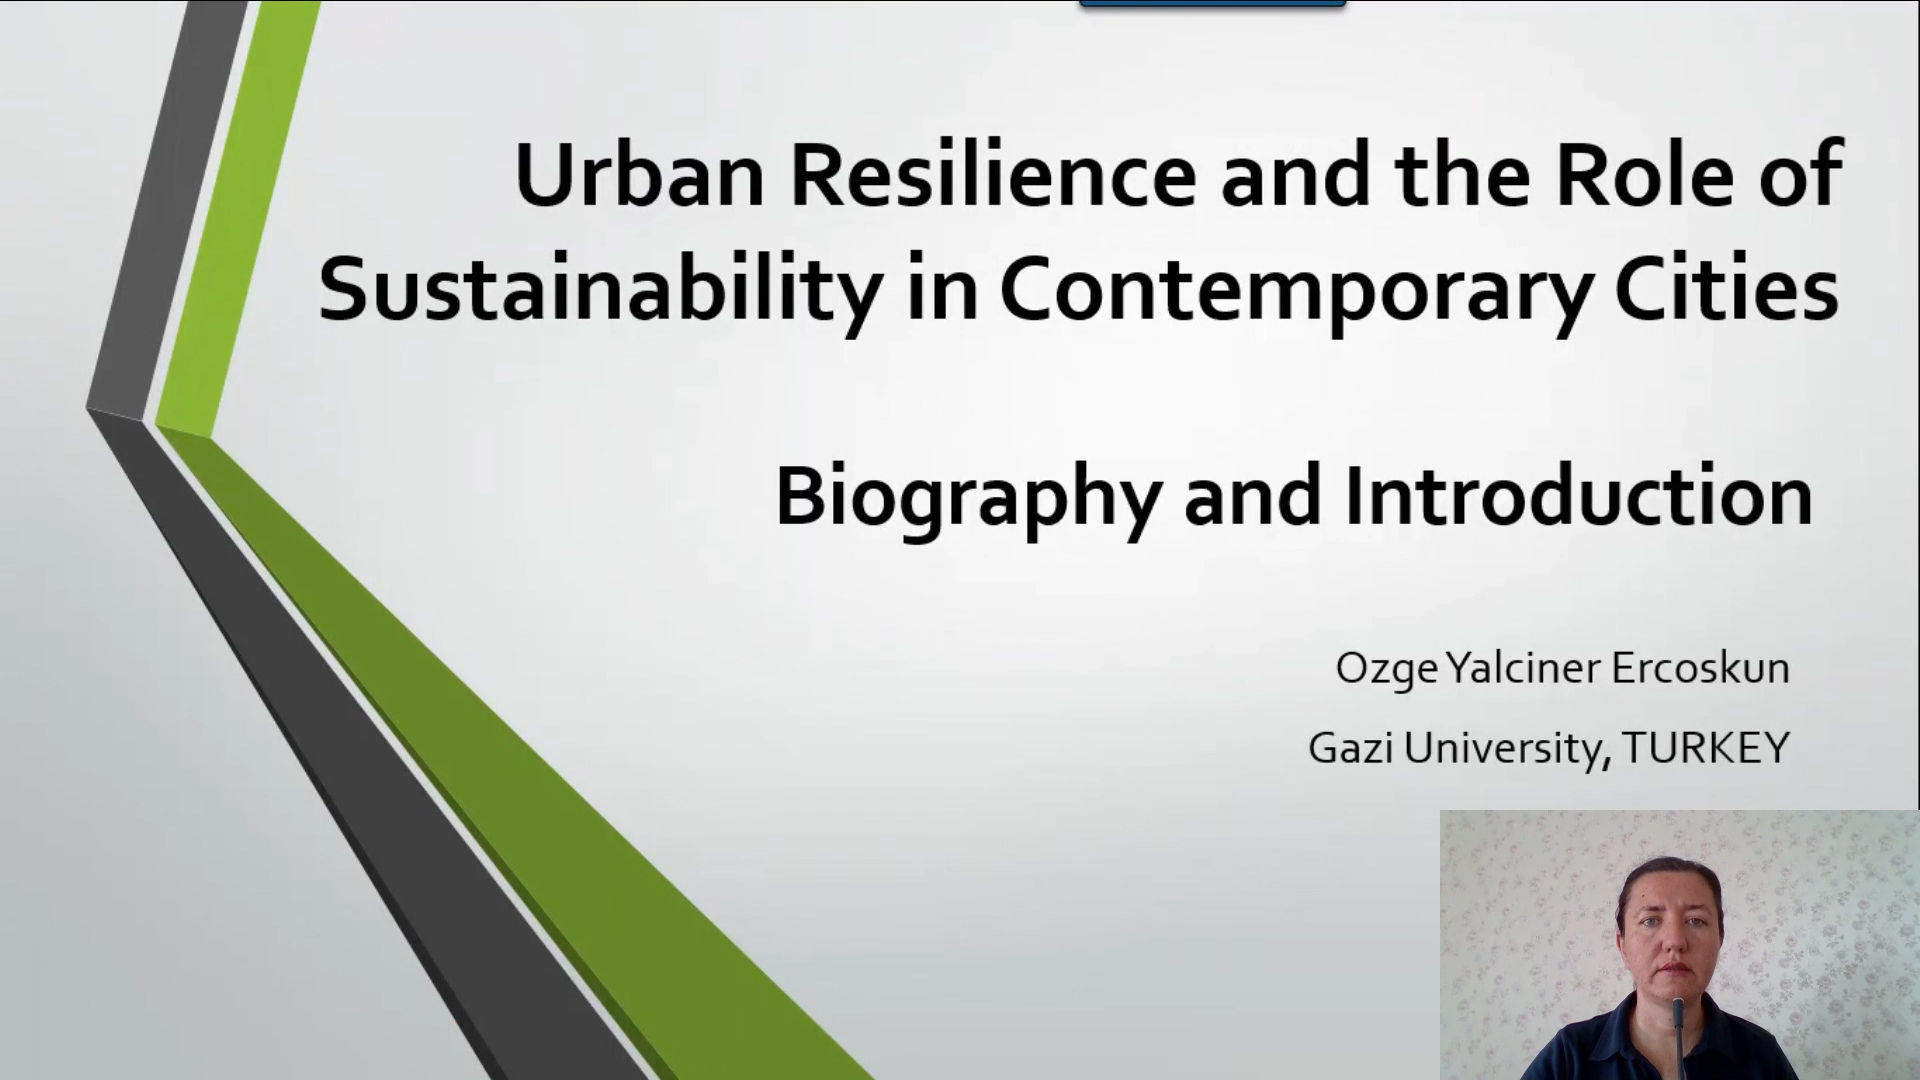 Urban Resilience and the Role of Sustainability in Contemporary Cities